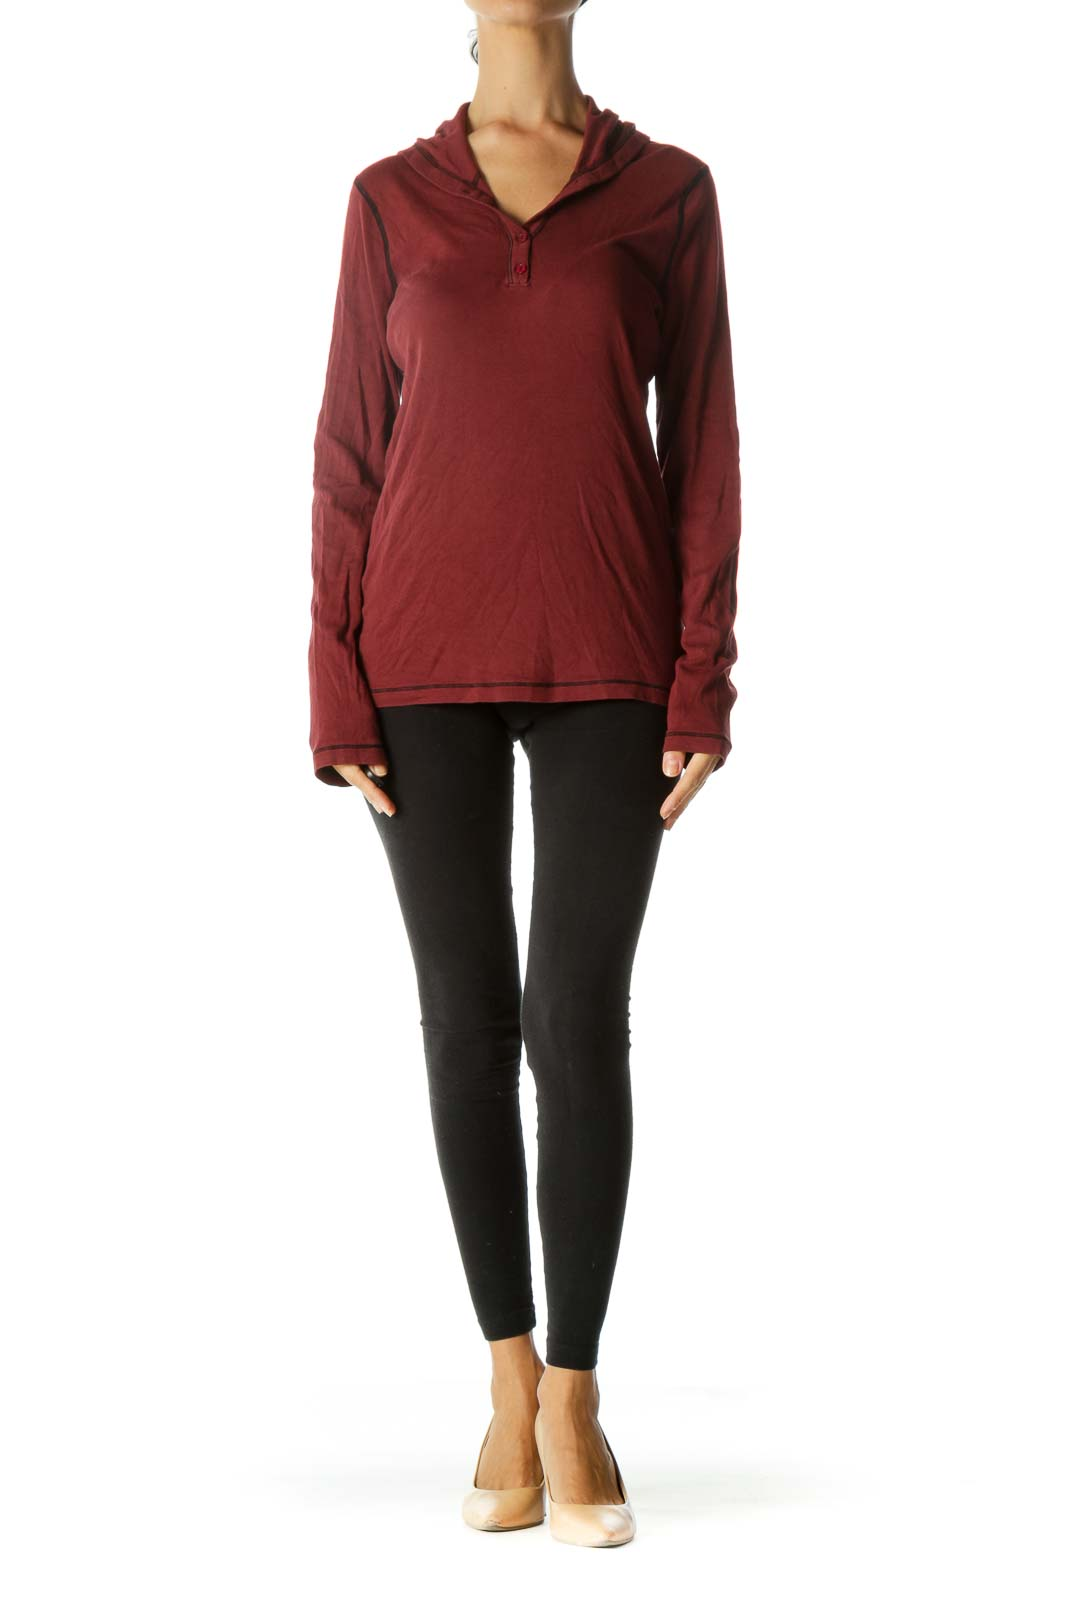 Burgundy Black Supima Cotton Blend Hooded Stretch Long Sleeve Top